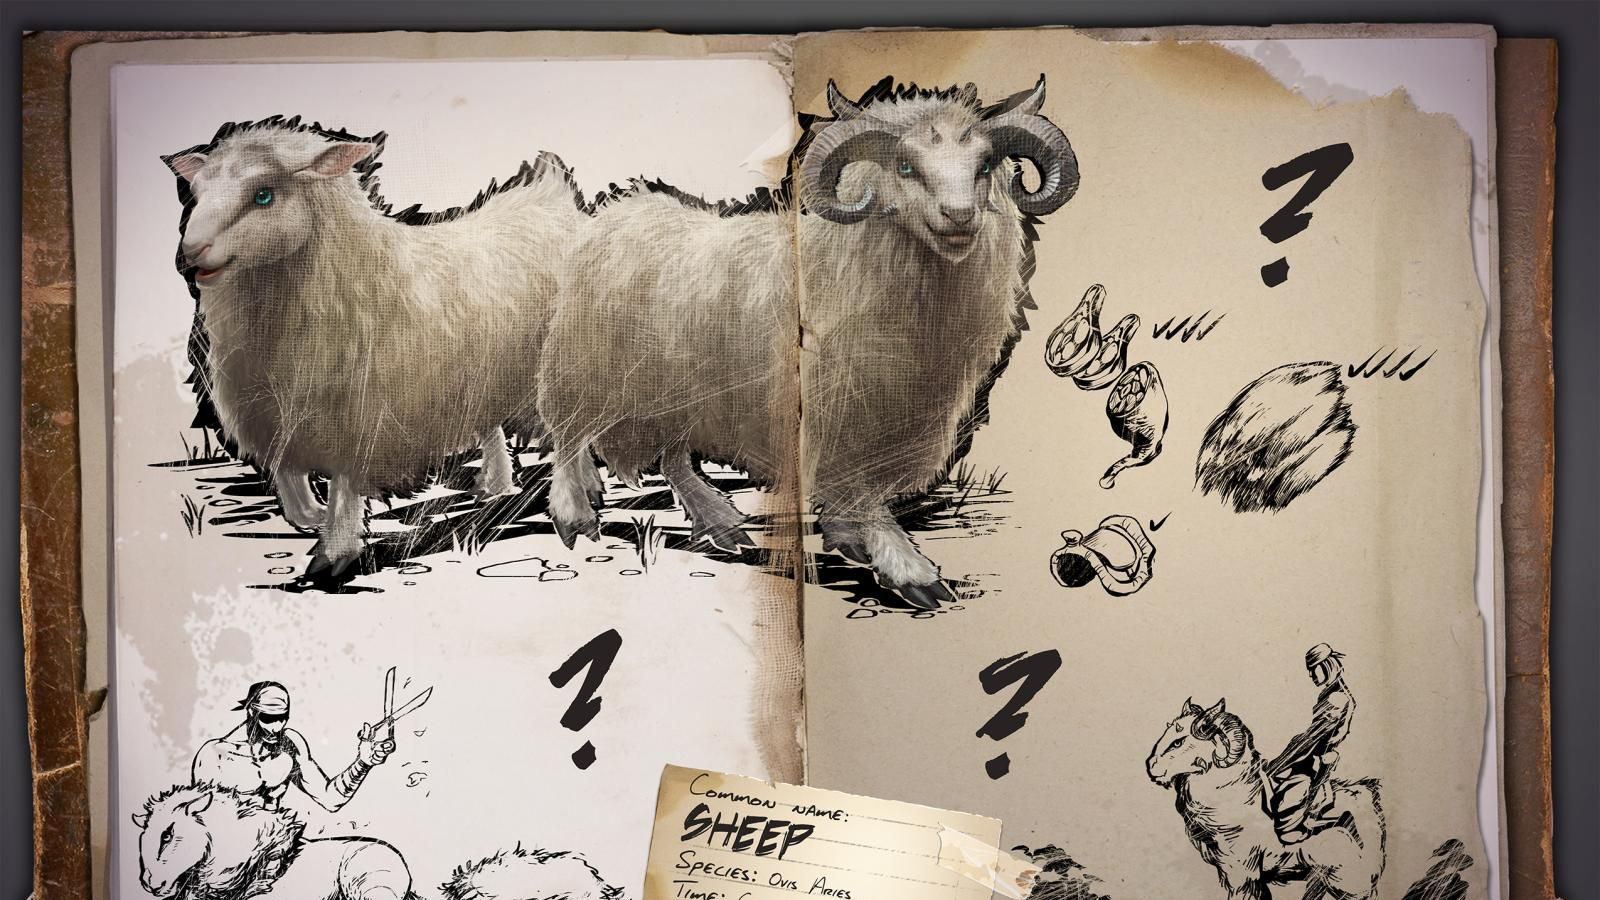 Sheep coming to Ark: Survival Evolved after Steam Awards promo blows up